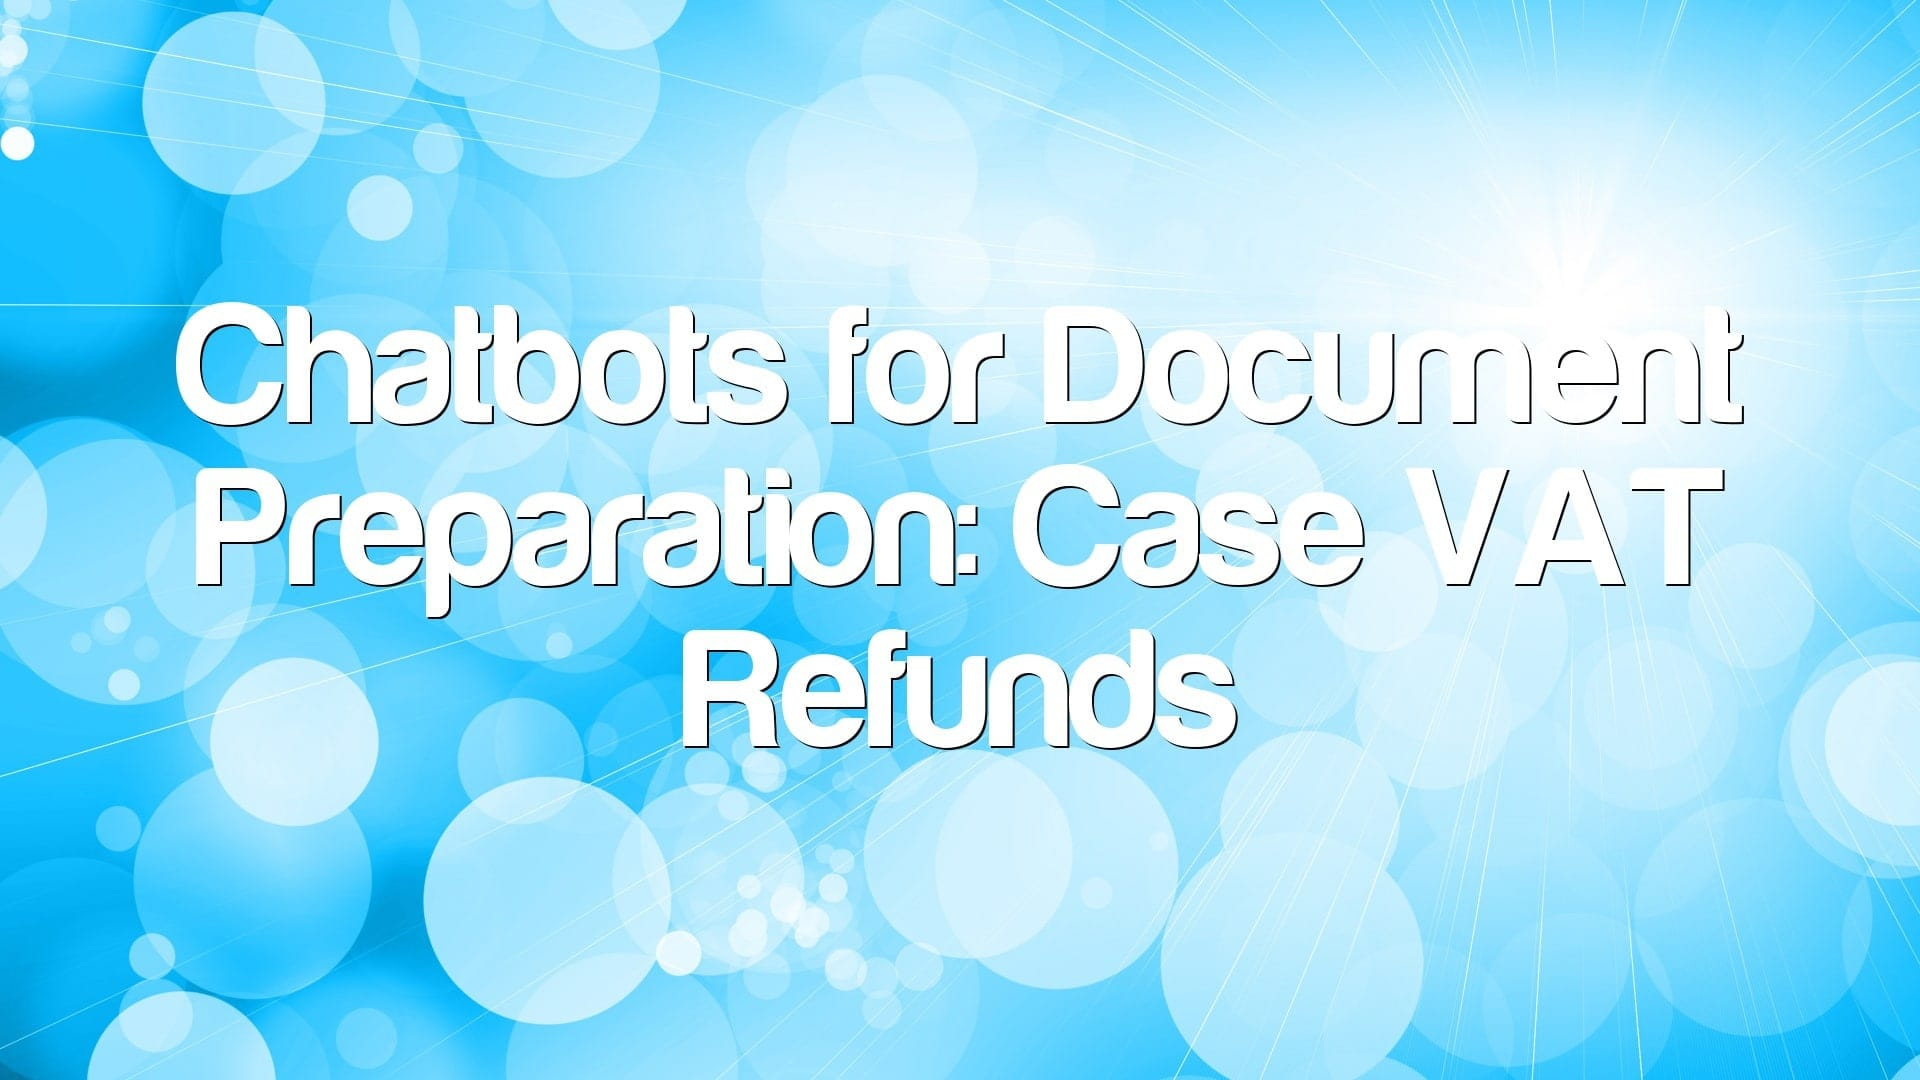 Chatbots for Document Preparation: Case VAT Refunds